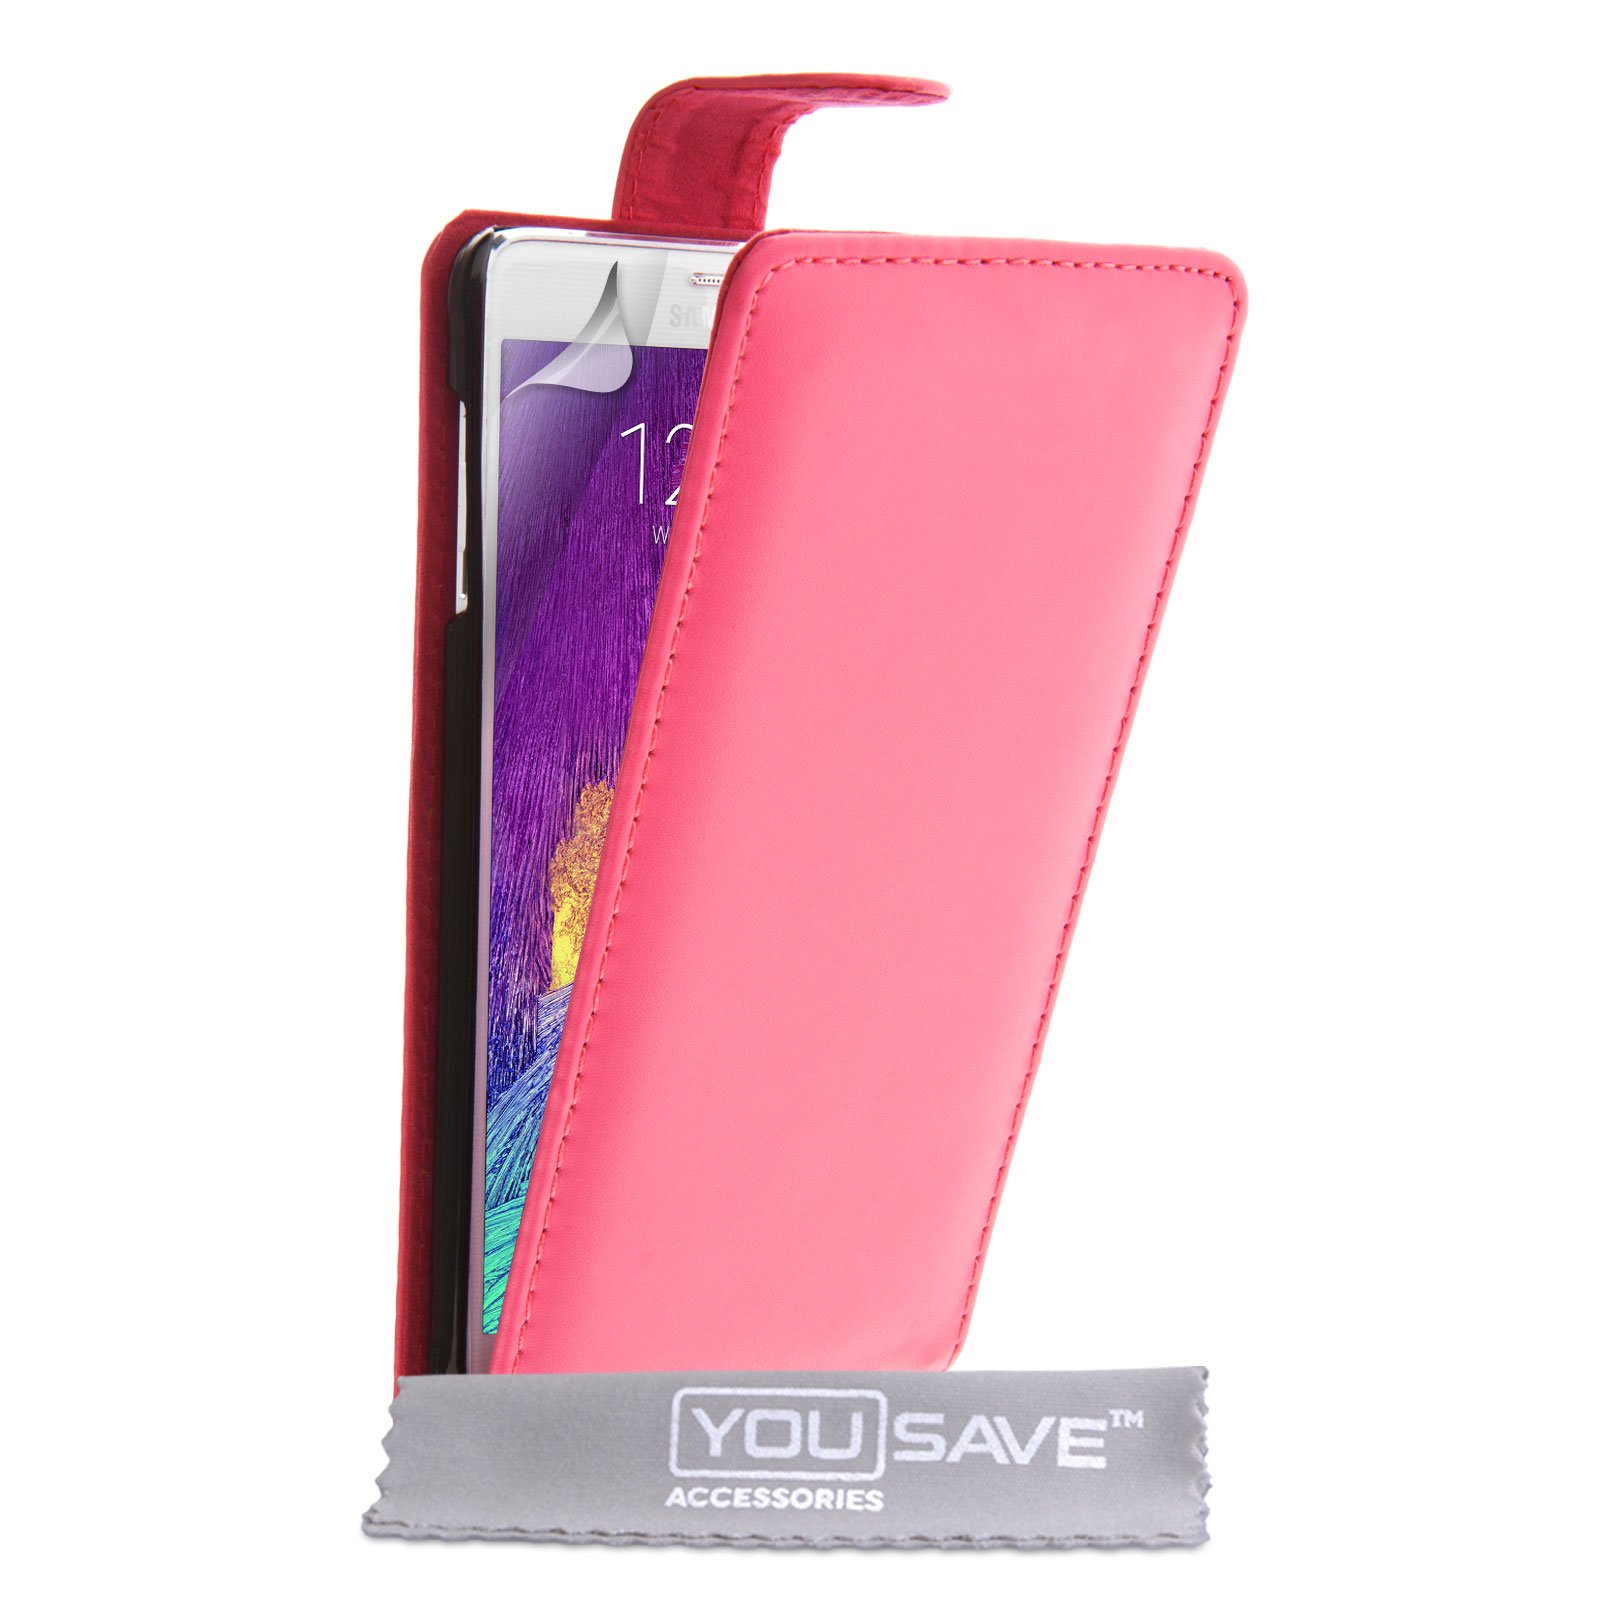 YouSave Samsung Galaxy Note 4 Leather-Effect Flip Case - Hot Pink